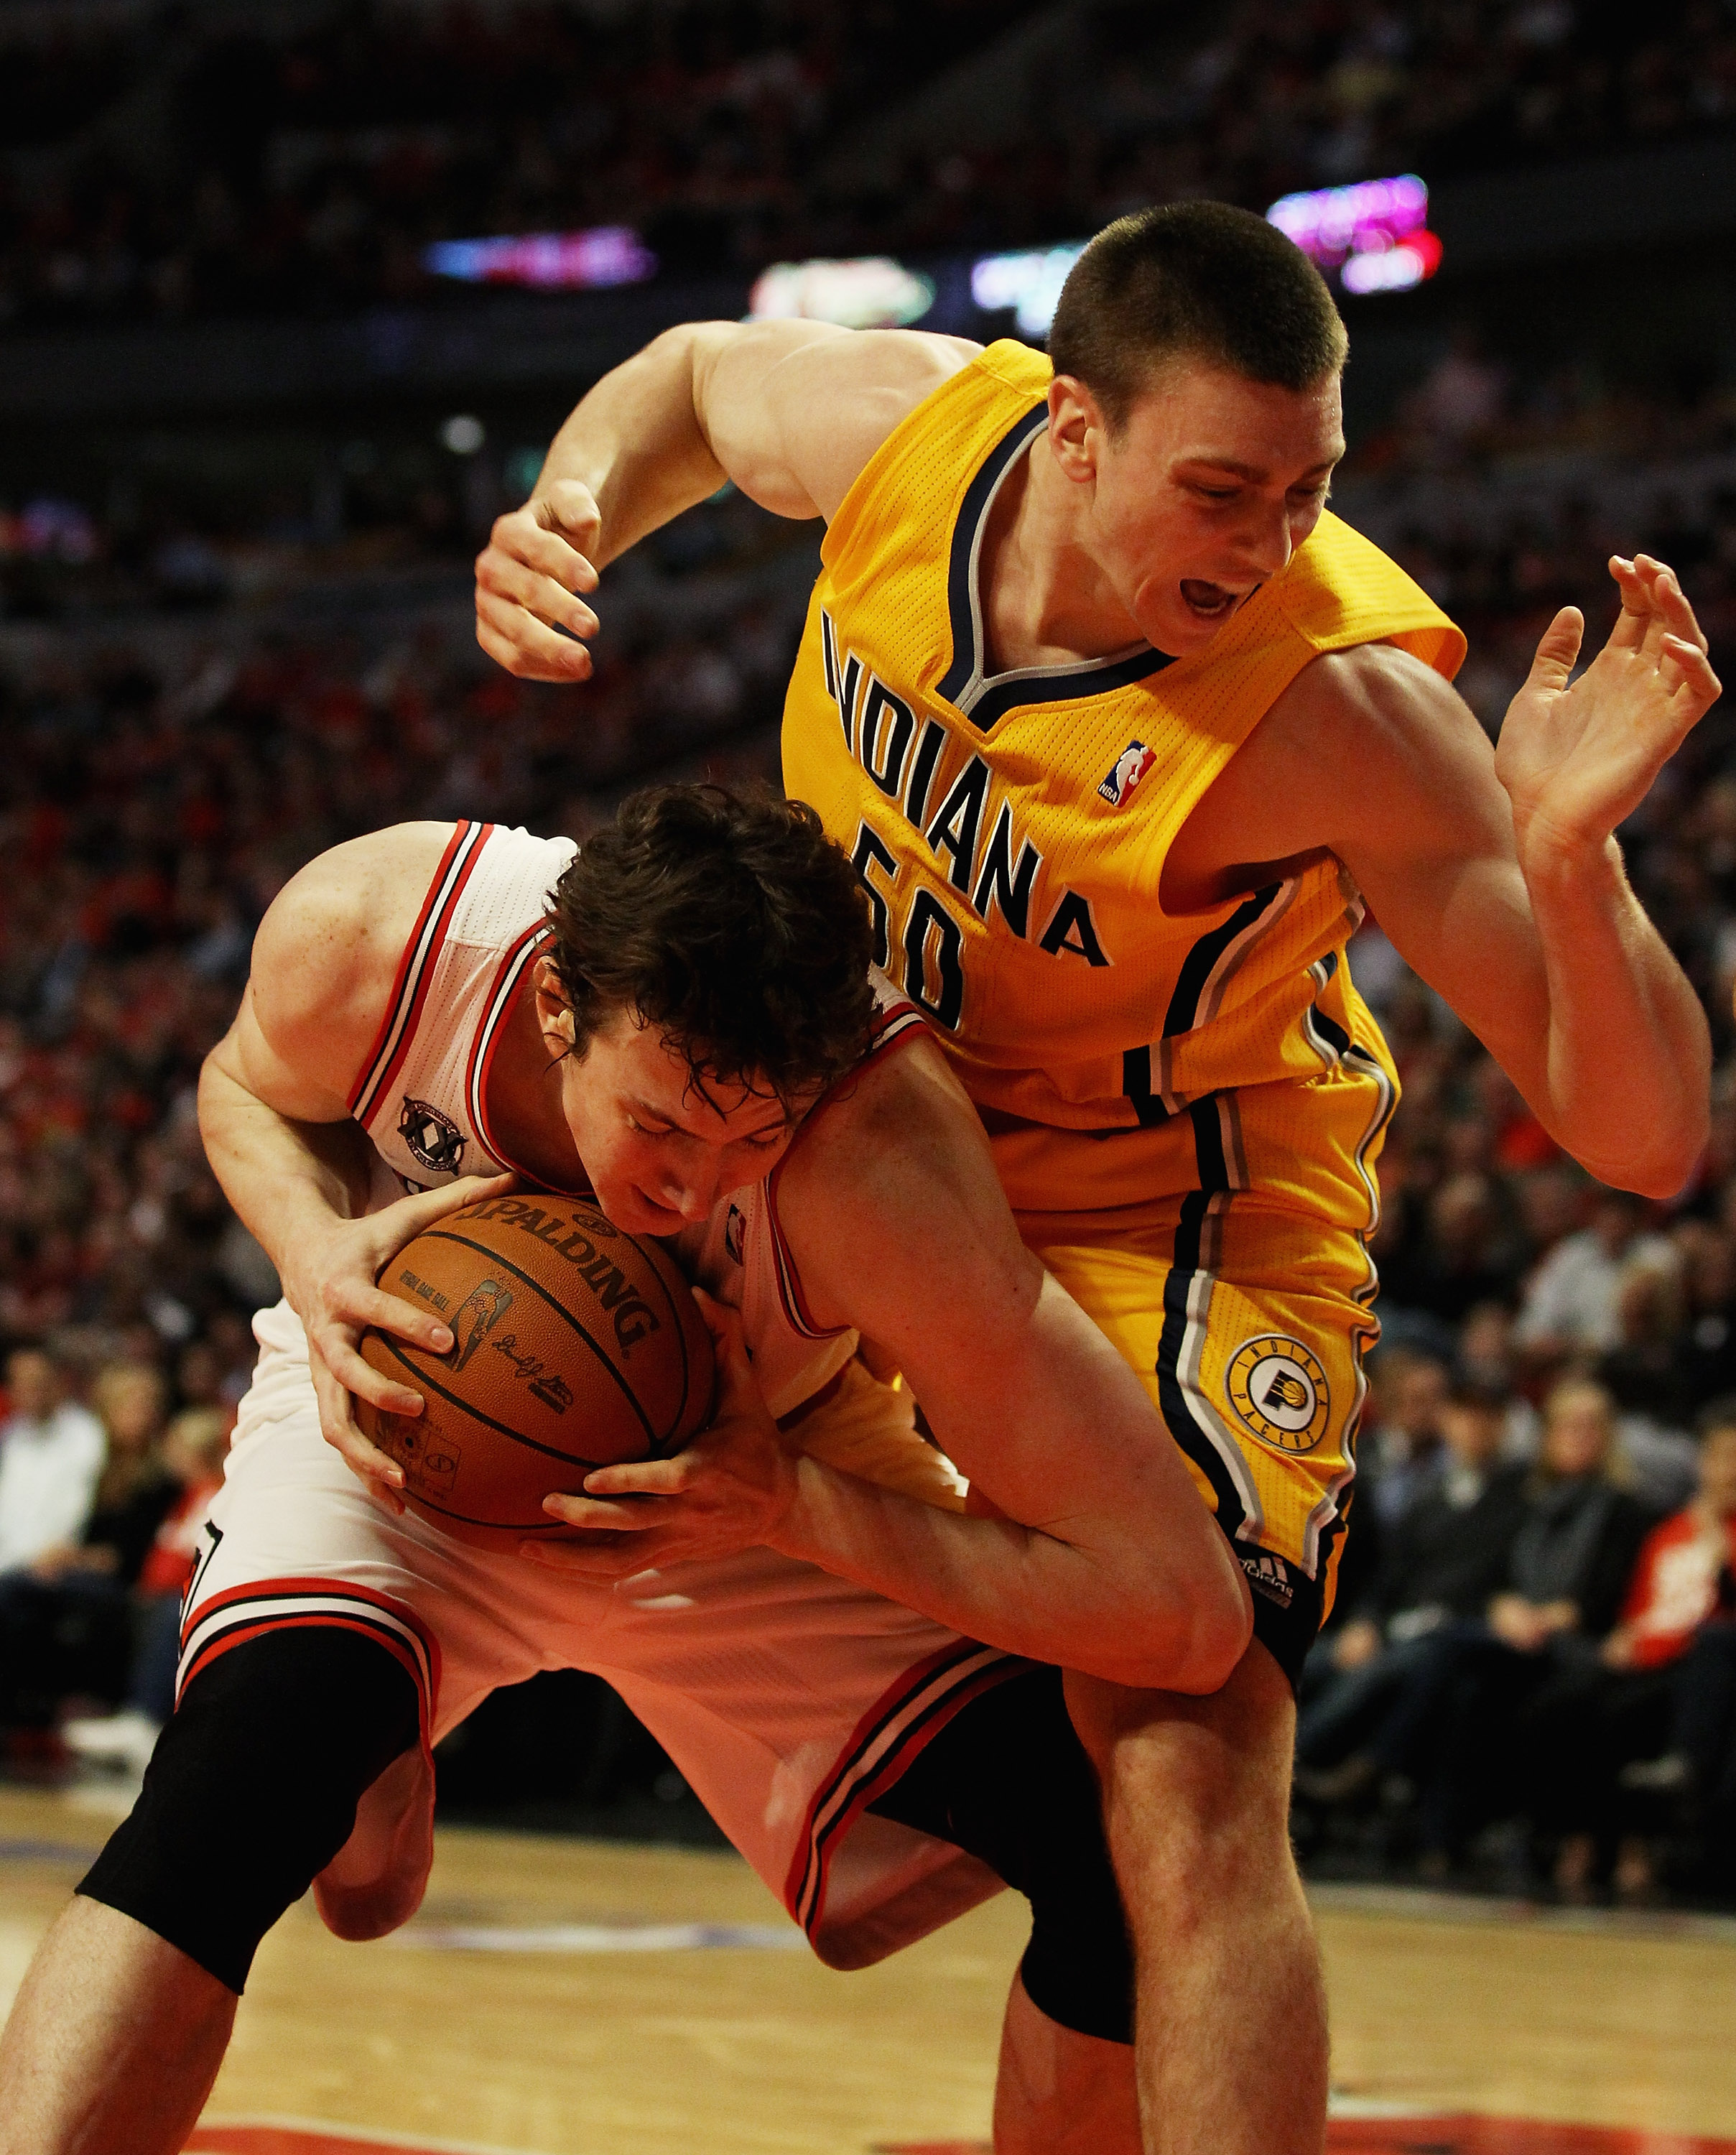 CHICAGO, IL - APRIL 26: Tyler Hansbrough #50 of the Indiana Pacers lands on Omer Asik #3 of the Chicago Bulls after Asik grabbed a rebound in Game Five of the Eastern Conference Quarterfinals in the 2011 NBA Playoffs at the United Center on April 26, 2011